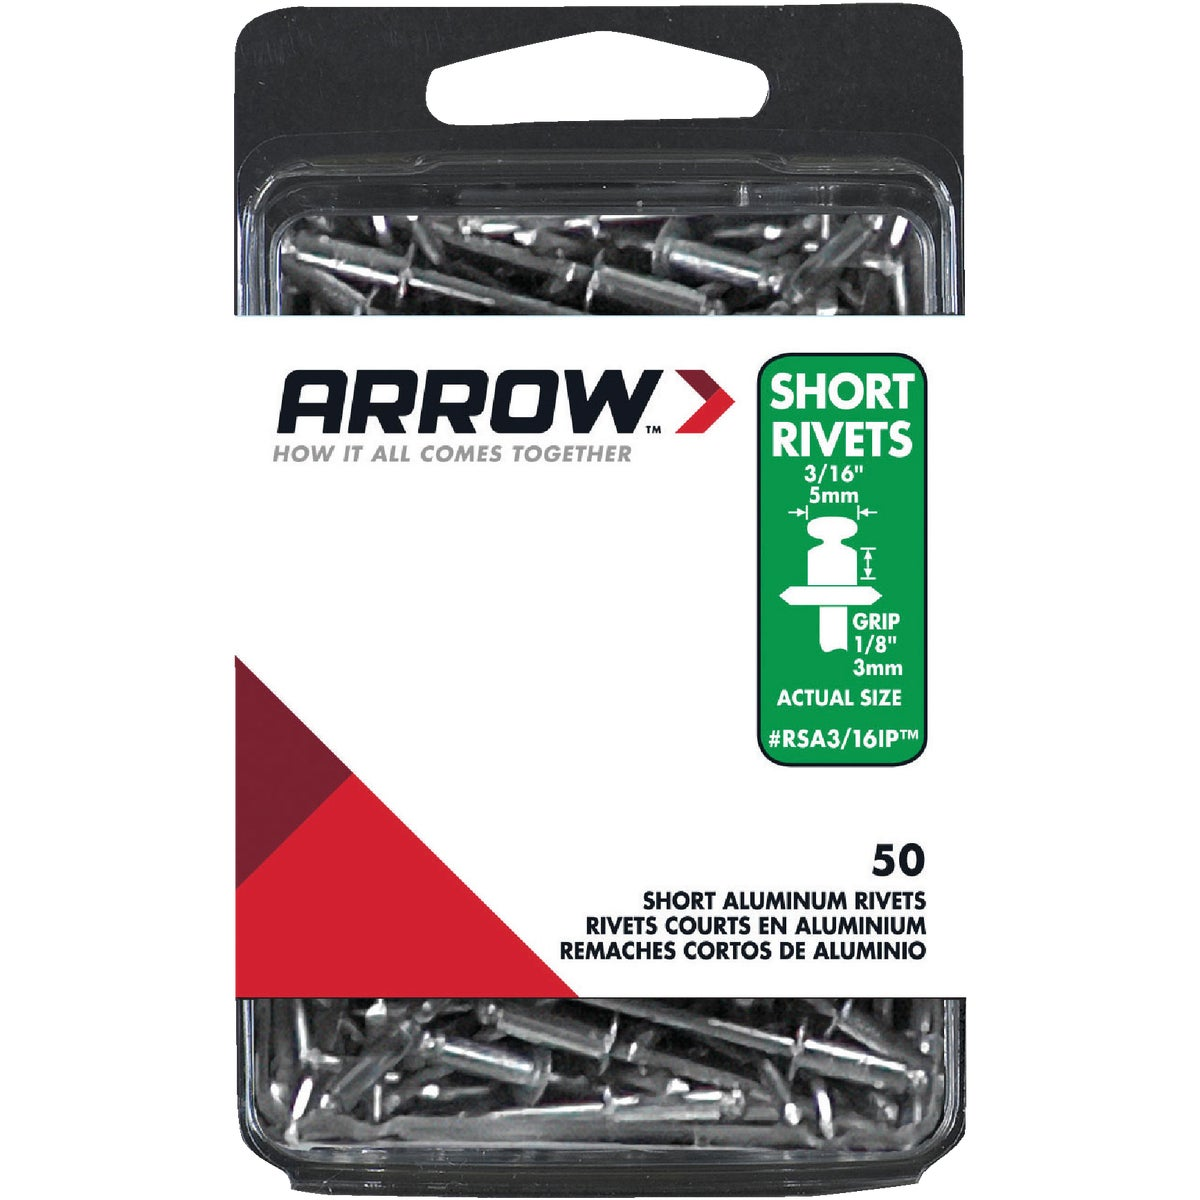 3/16X1/8 ALUM RIVET - RSA3/16IP by Arrow Fastener Co